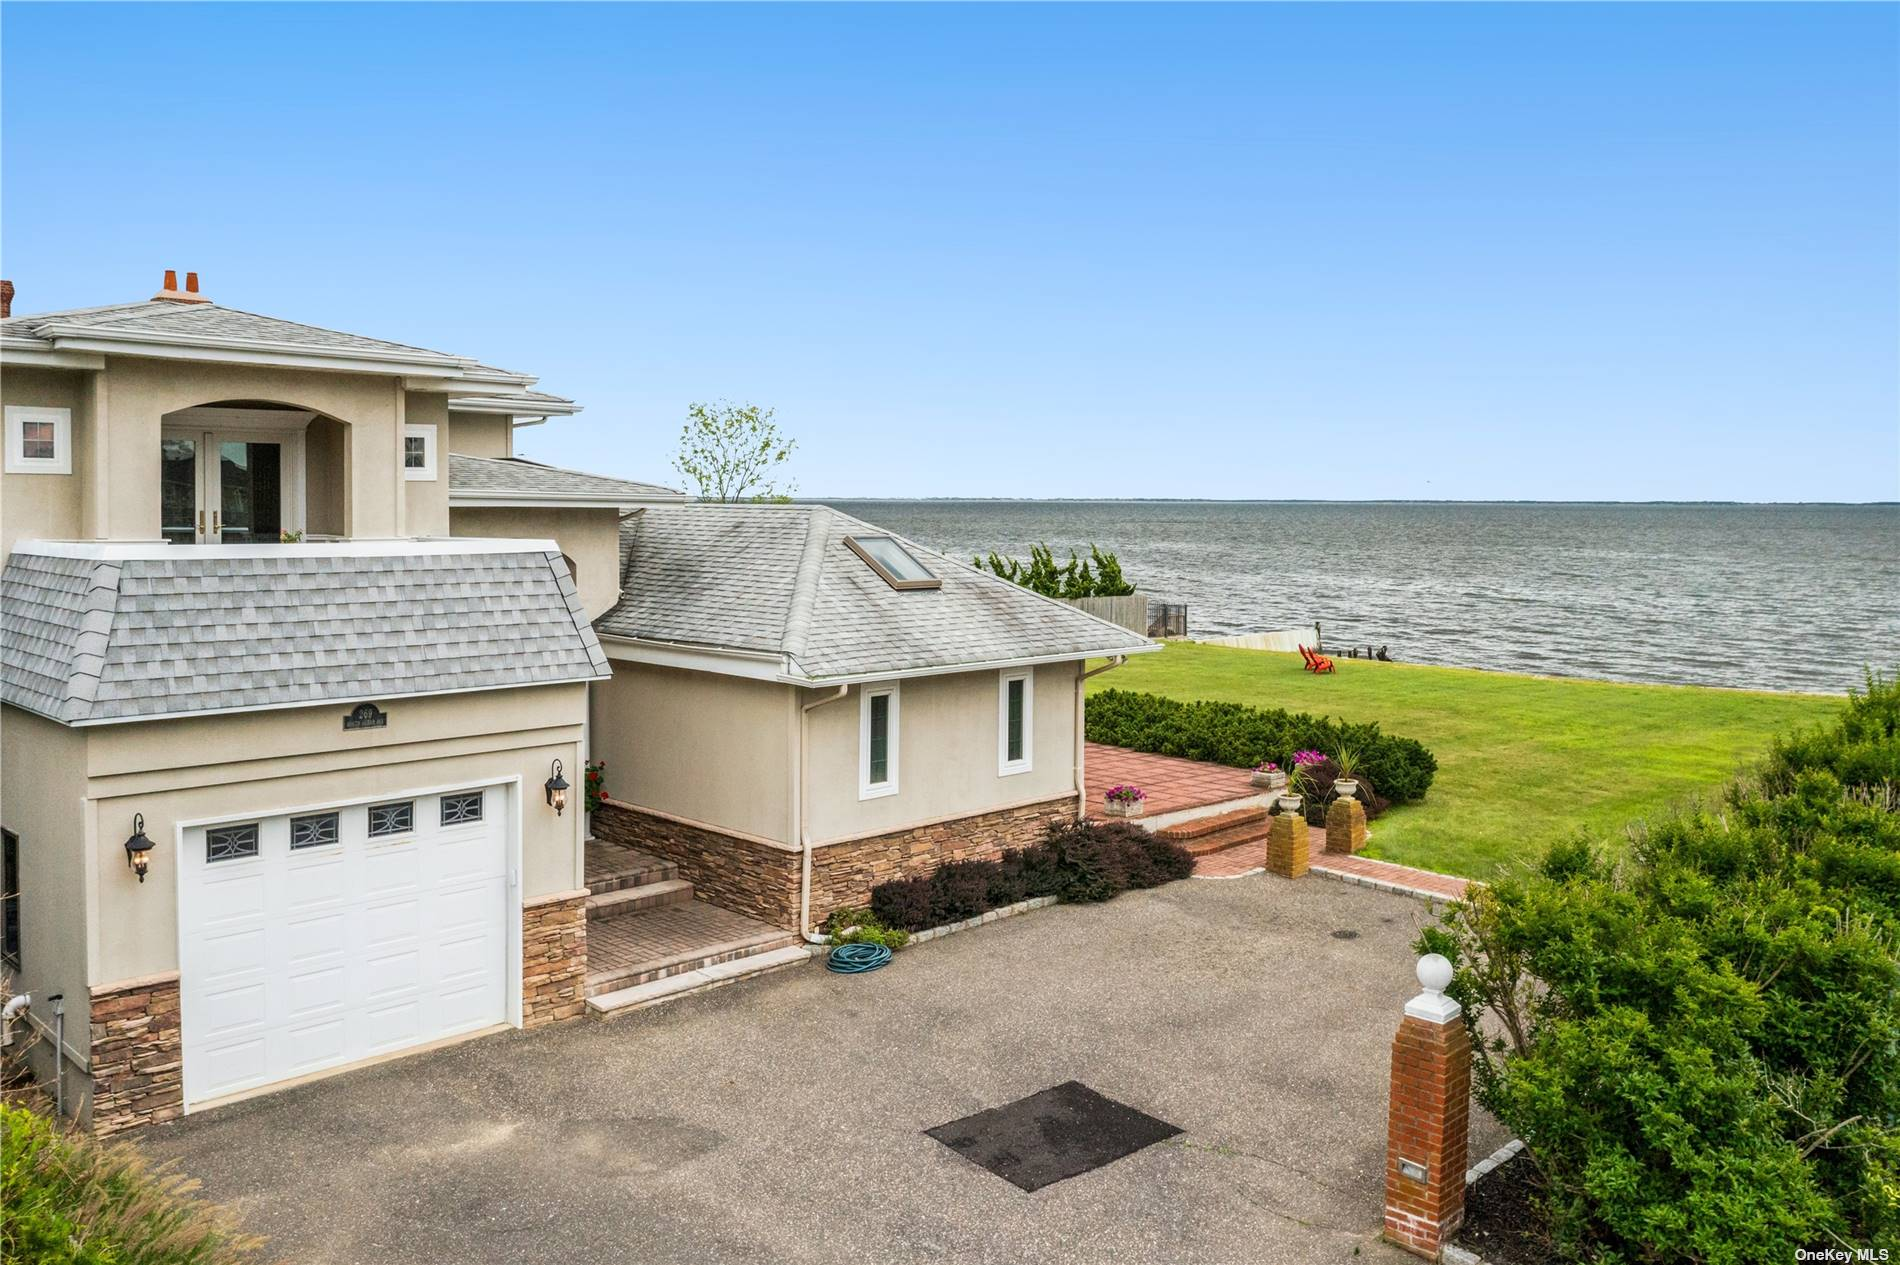 If you are searching for a home that offers magnificent views of the Great South Bay, located at the end of coveted South Ocean Avenue with 210 feet of bulkheading and private beach, this could be your new home. Enter the dramatic two story staircase foyer to a spacious open floorplan consisting of living room, dining room, eat-in kitchen, den with a fireplace, and master bedroom suite - all with dramatic waterfront views. Second floor offers two bedrooms, full bath, and a spacious loft area leading to a picturesque deck with unparalleled evening sunset views. This home offers a full finished basement with wet bar and bath and a one car attached garage. Do not miss the virtual tour to experience the views this home offers firsthand!